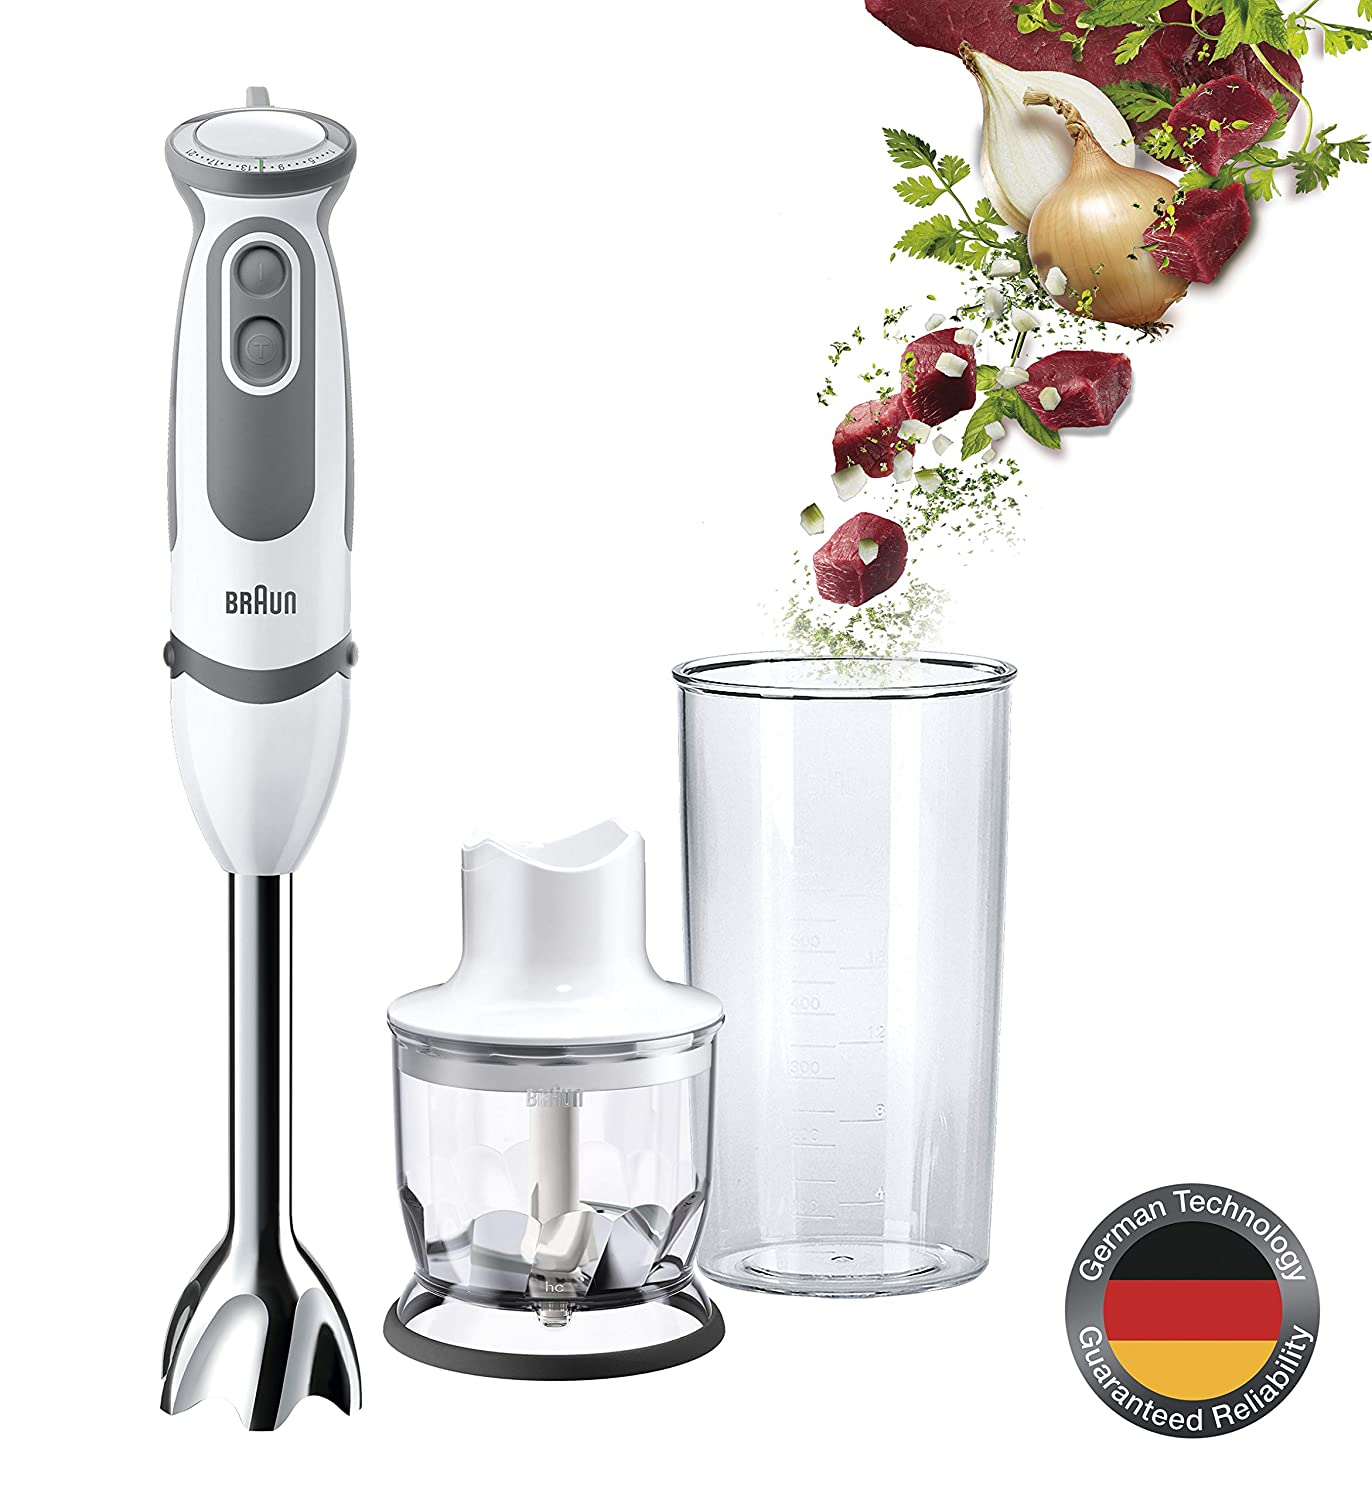 Braun MQ5020 Multiquick 5 Pasta Hand Blender w/ Chopper, 220V (Not for USA - European Cord)